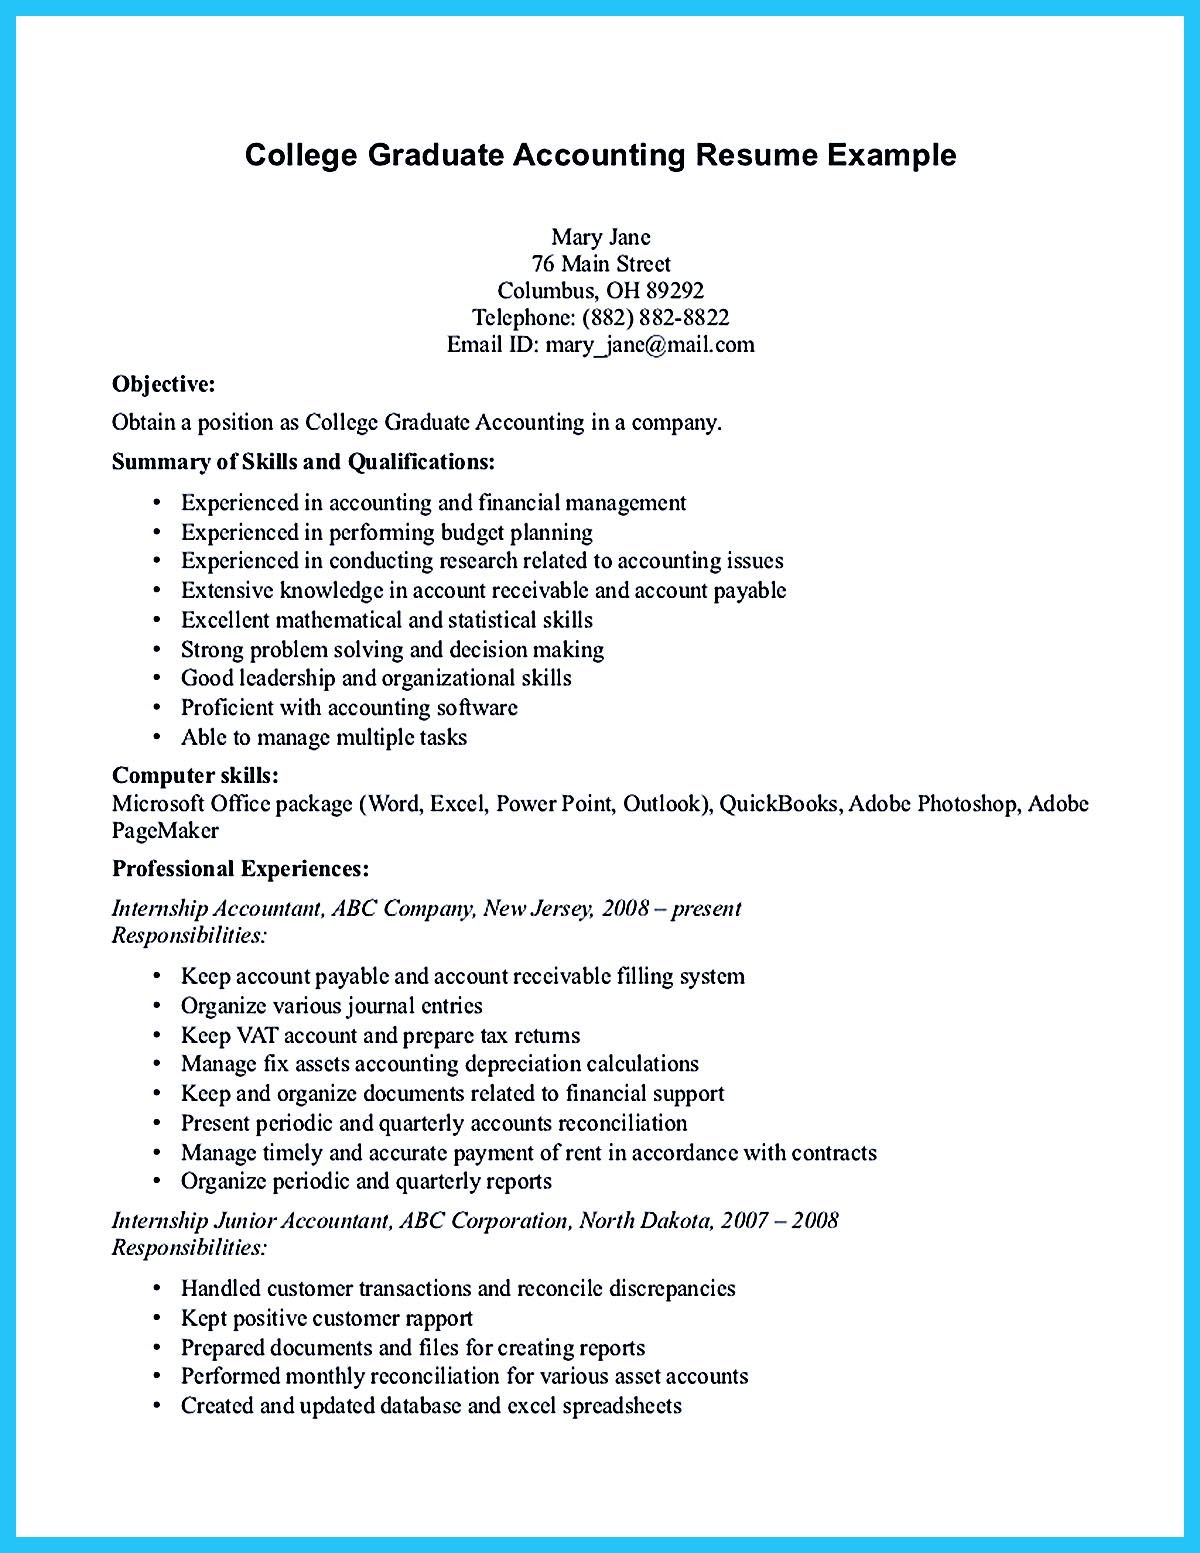 Accountant Sample Resume Accounting Student Resume Here Presents How The Resume Of